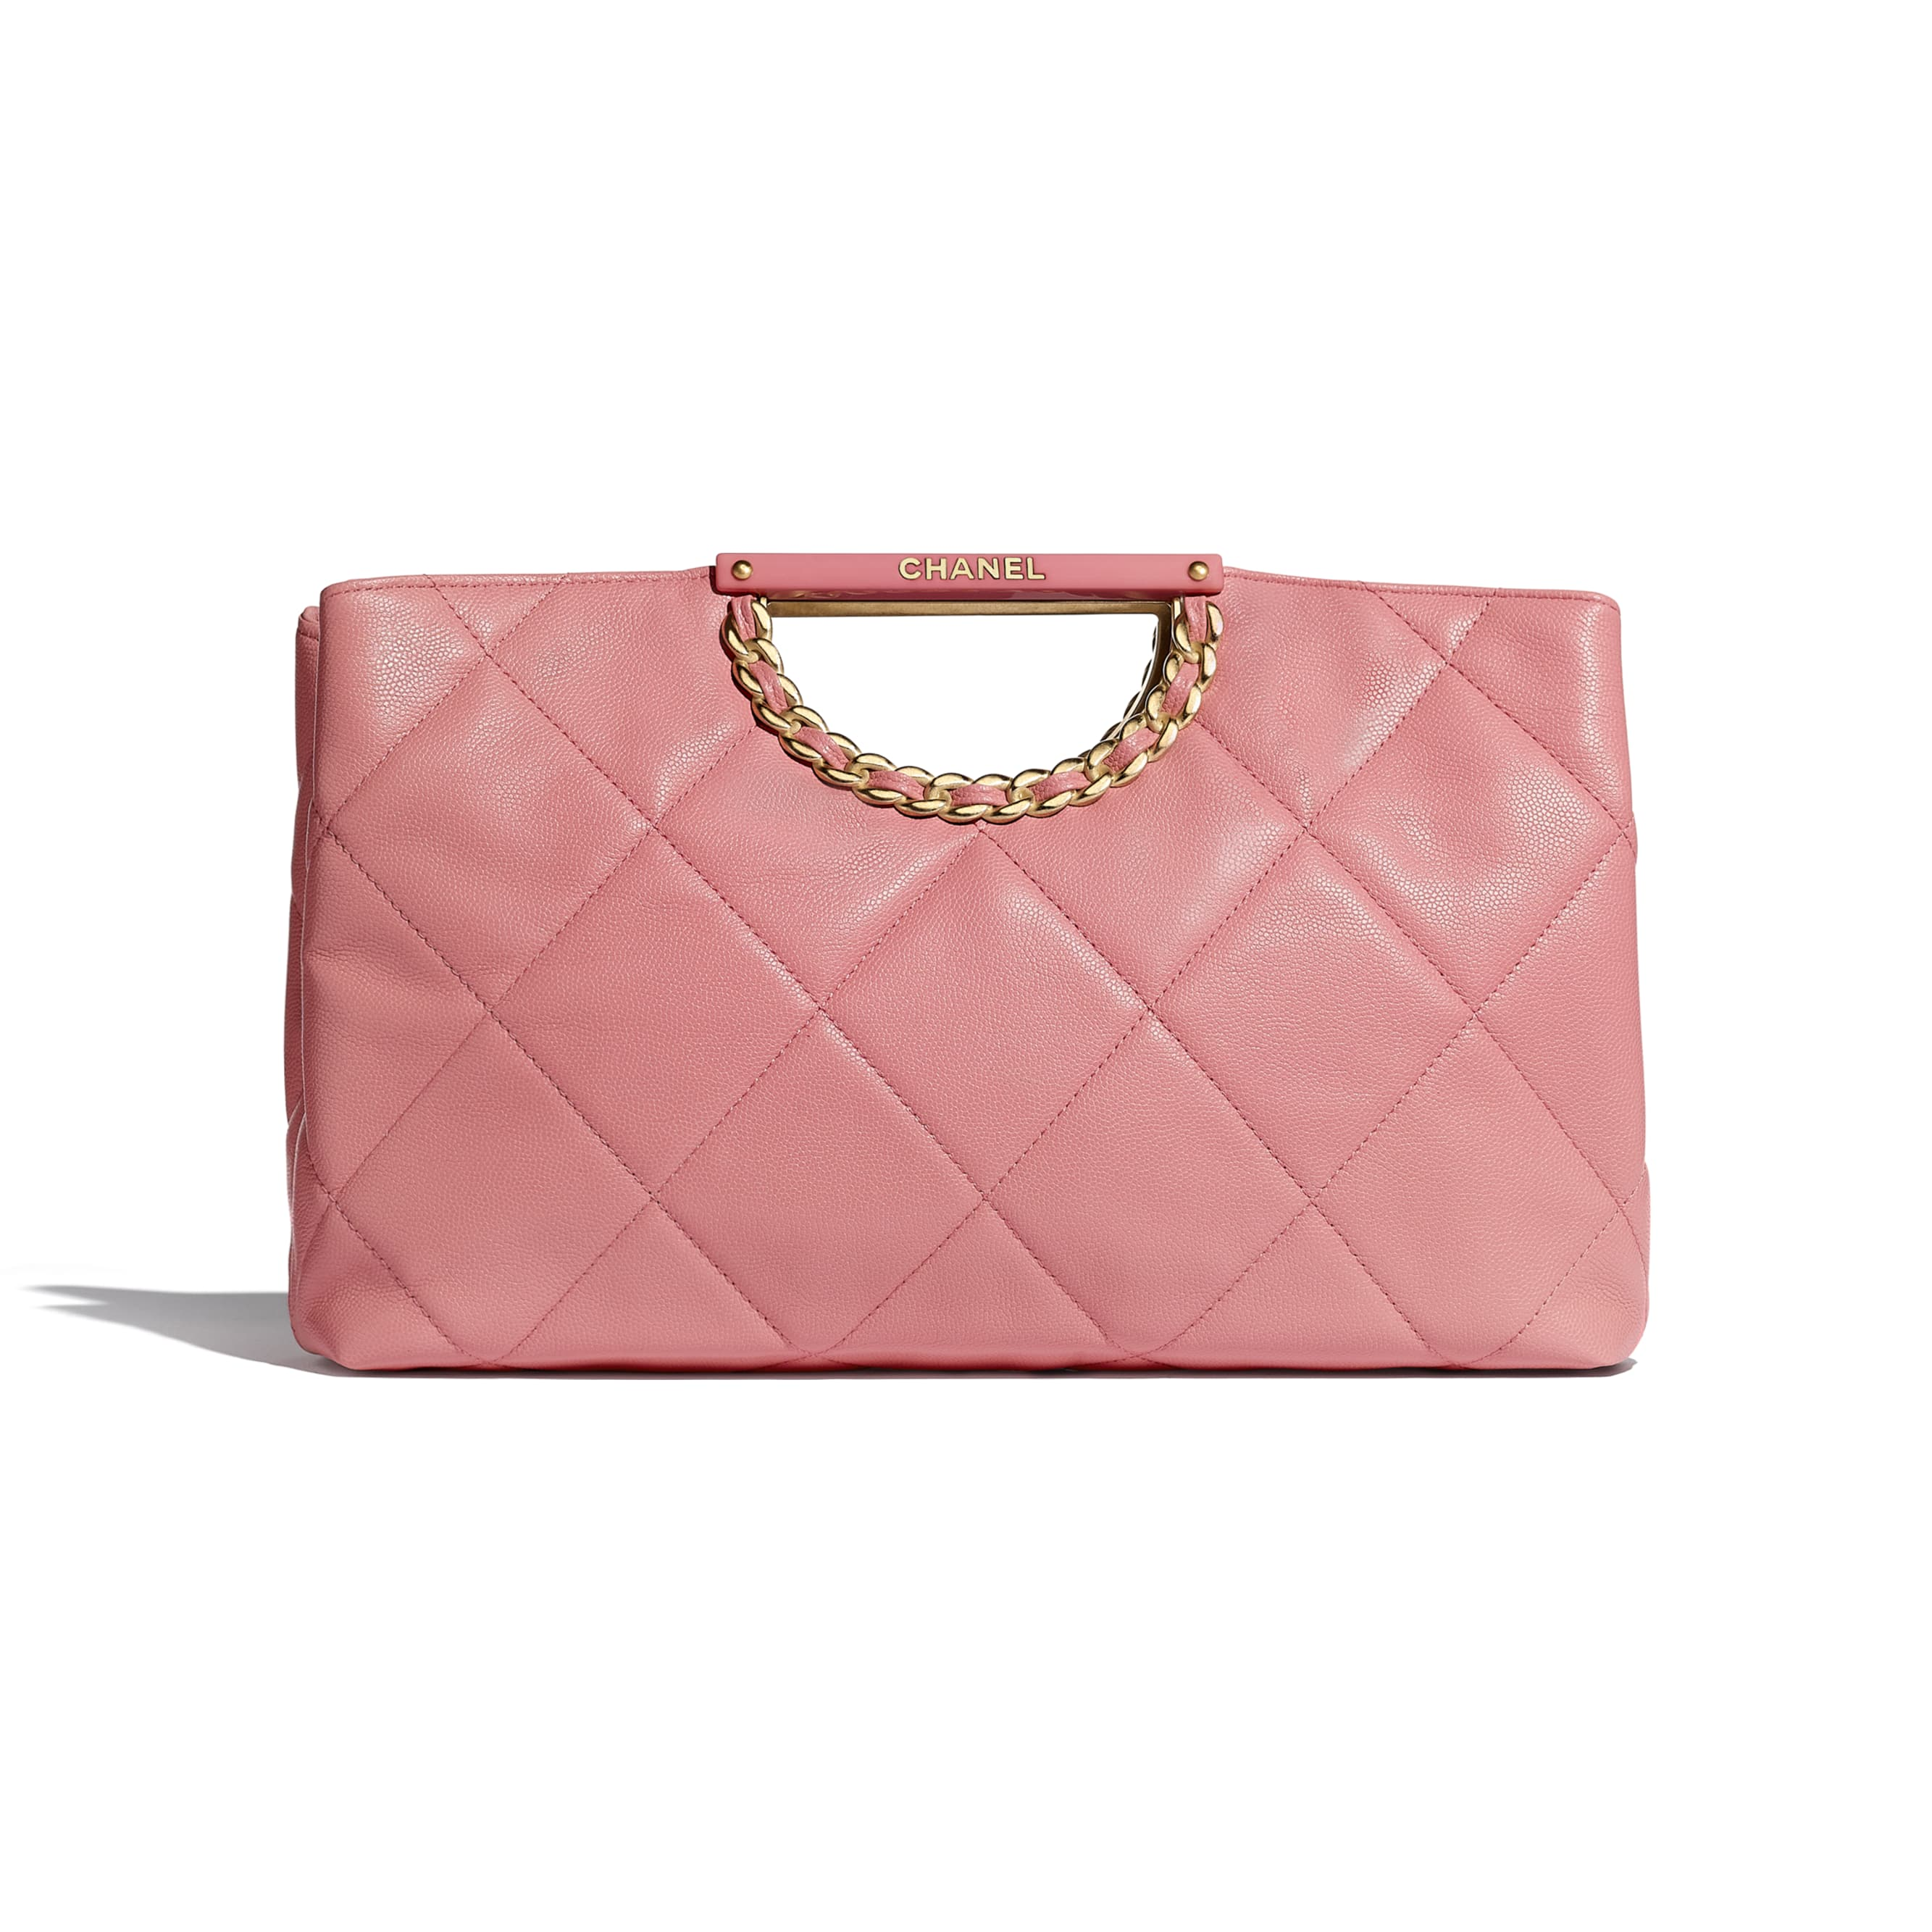 Clutch - Pink - Grained Calfskin & Gold-Tone Metal - Default view - see standard sized version